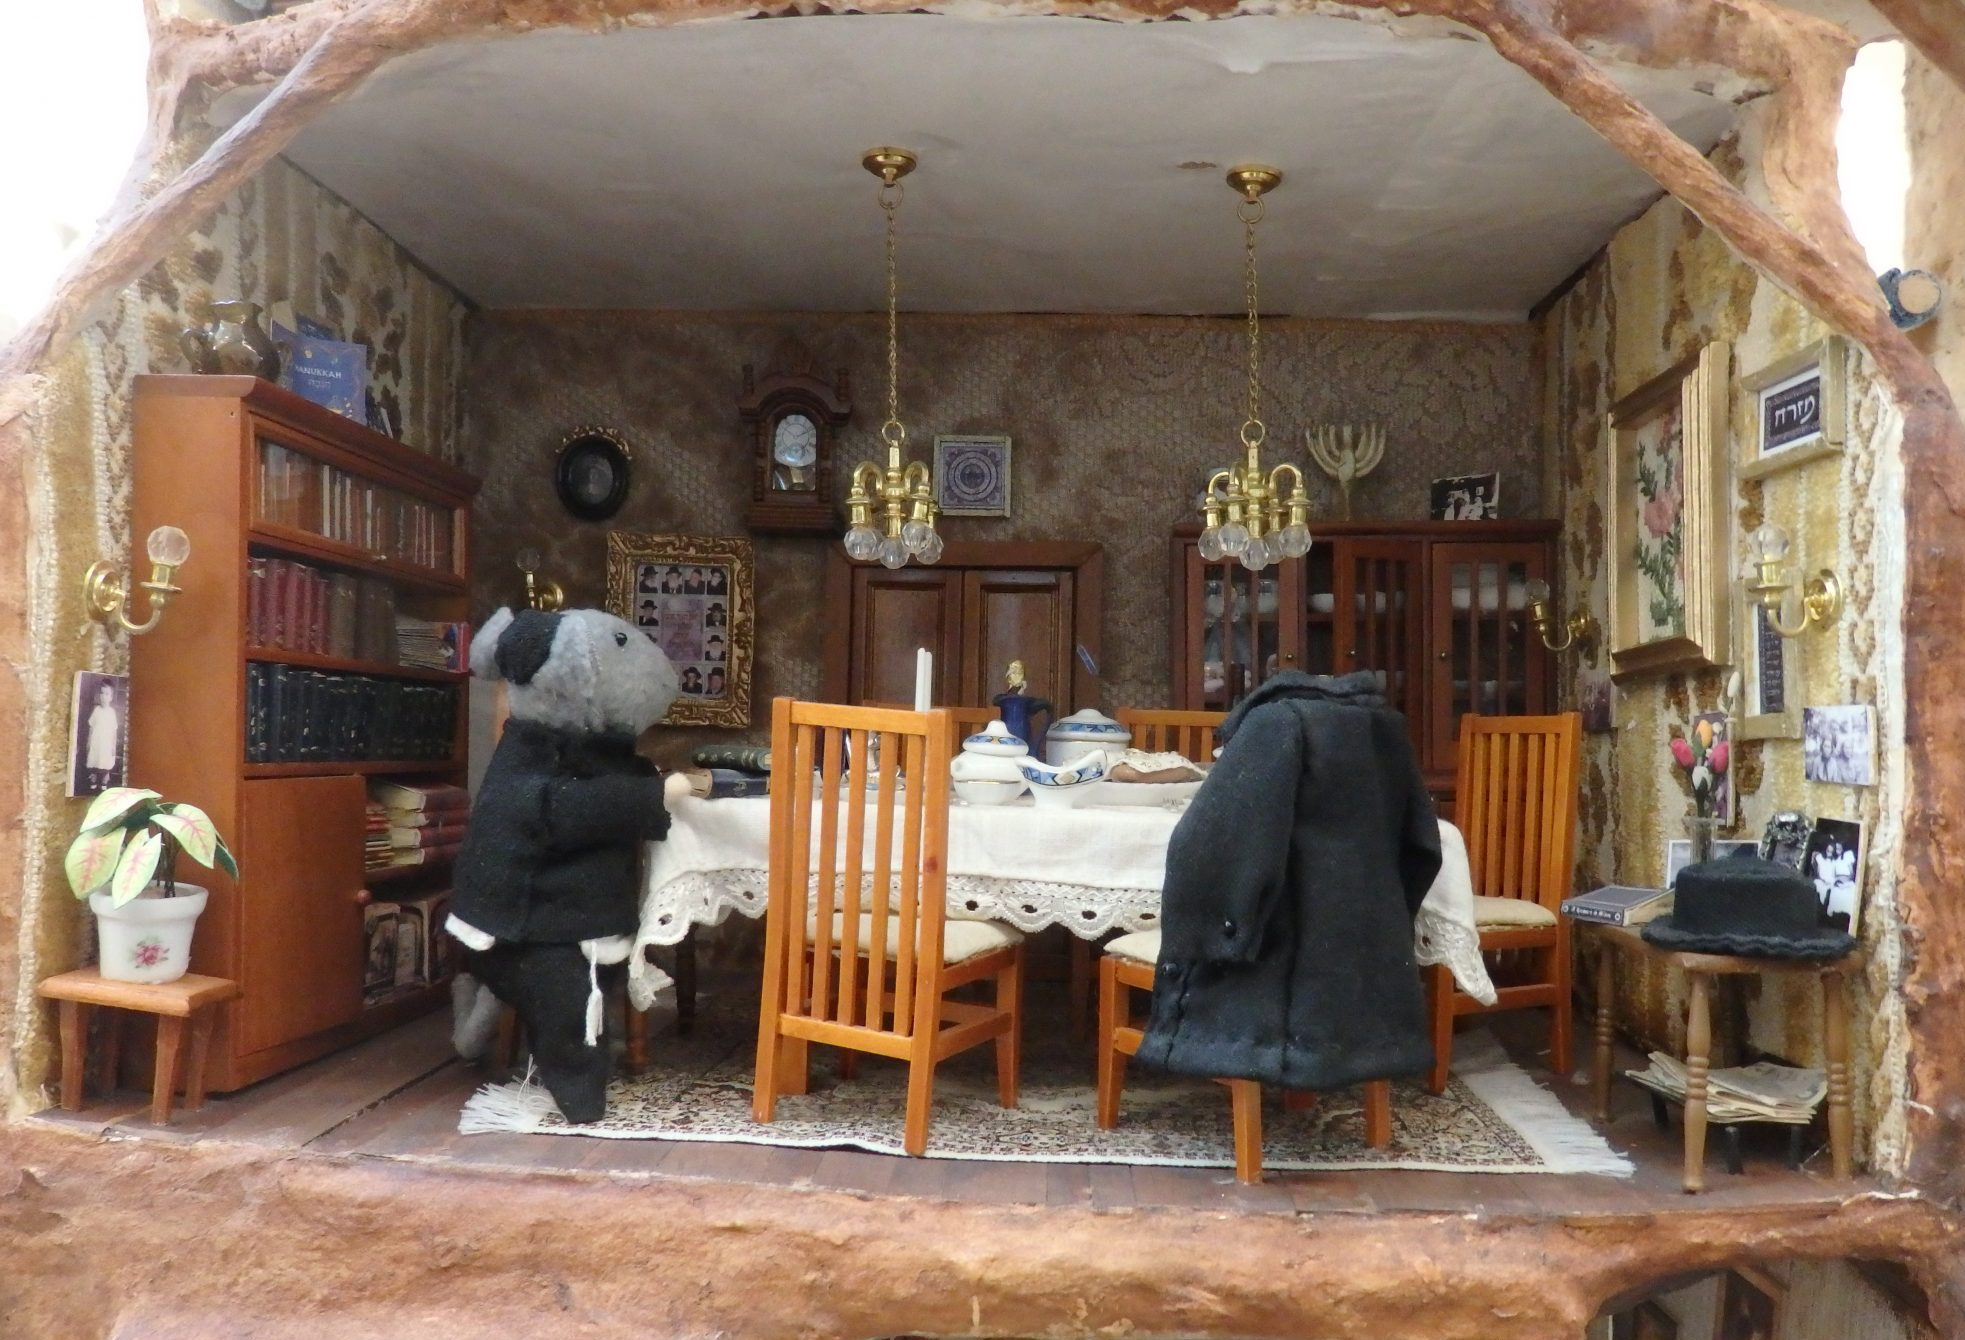 Hasids dining room in the Mouse Mansion in Amsterdam public library